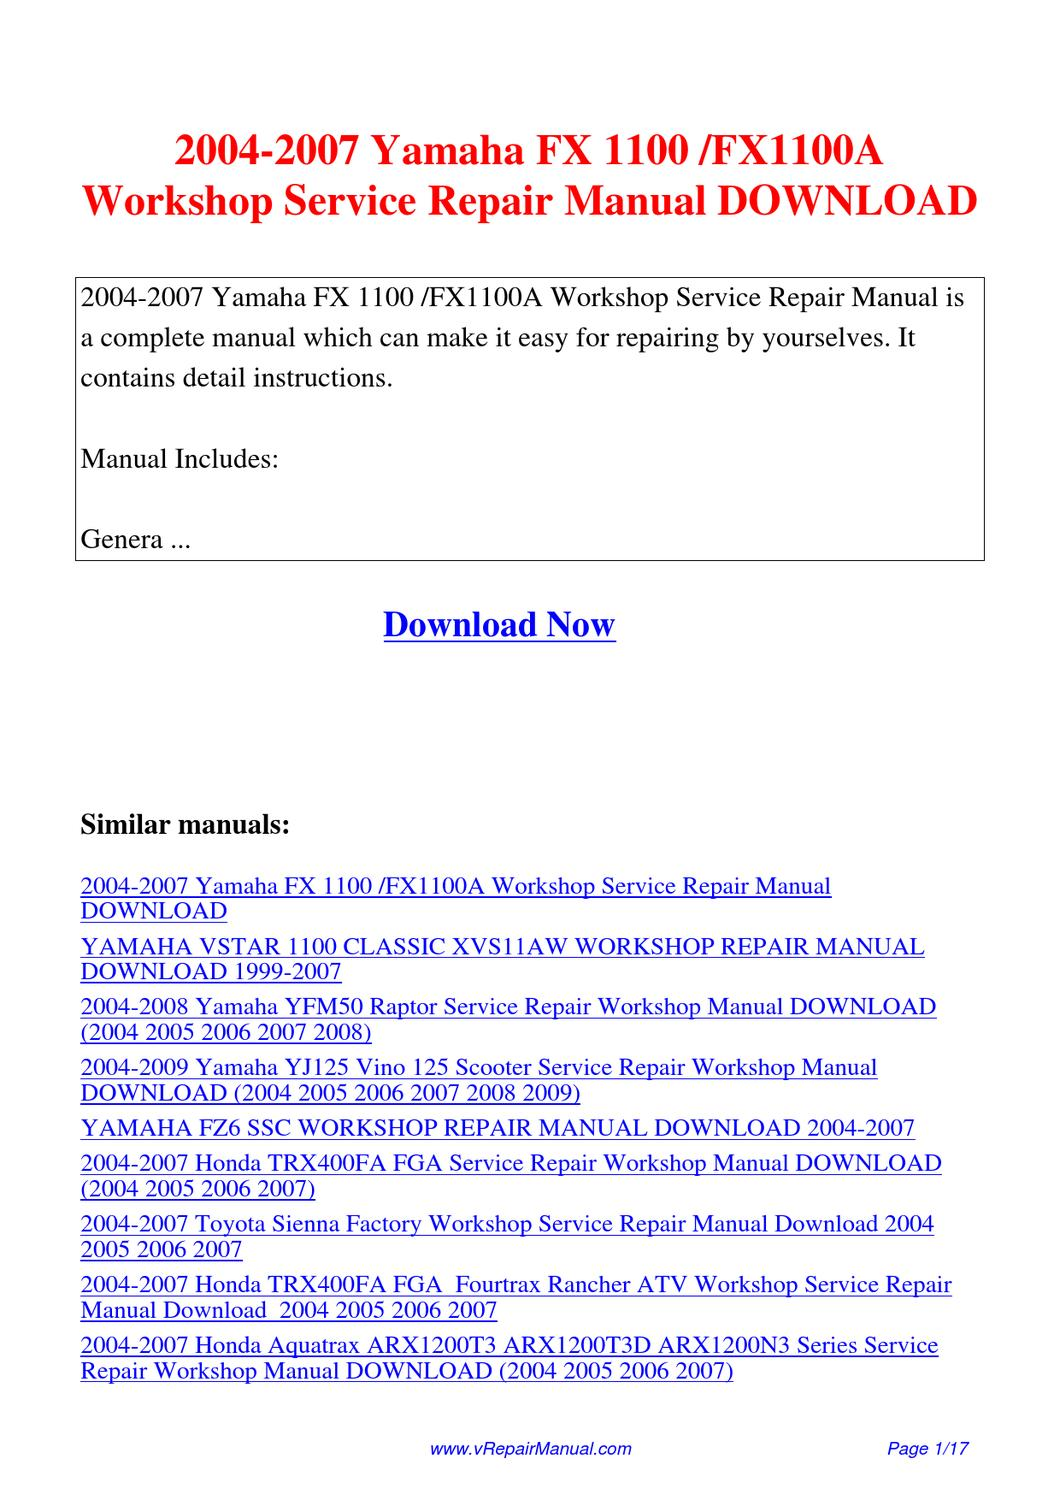 2004-2007_Yamaha_FX_1100_FX1100A_Workshop_Service_Repair_Manual by Yuan  Wang - issuu